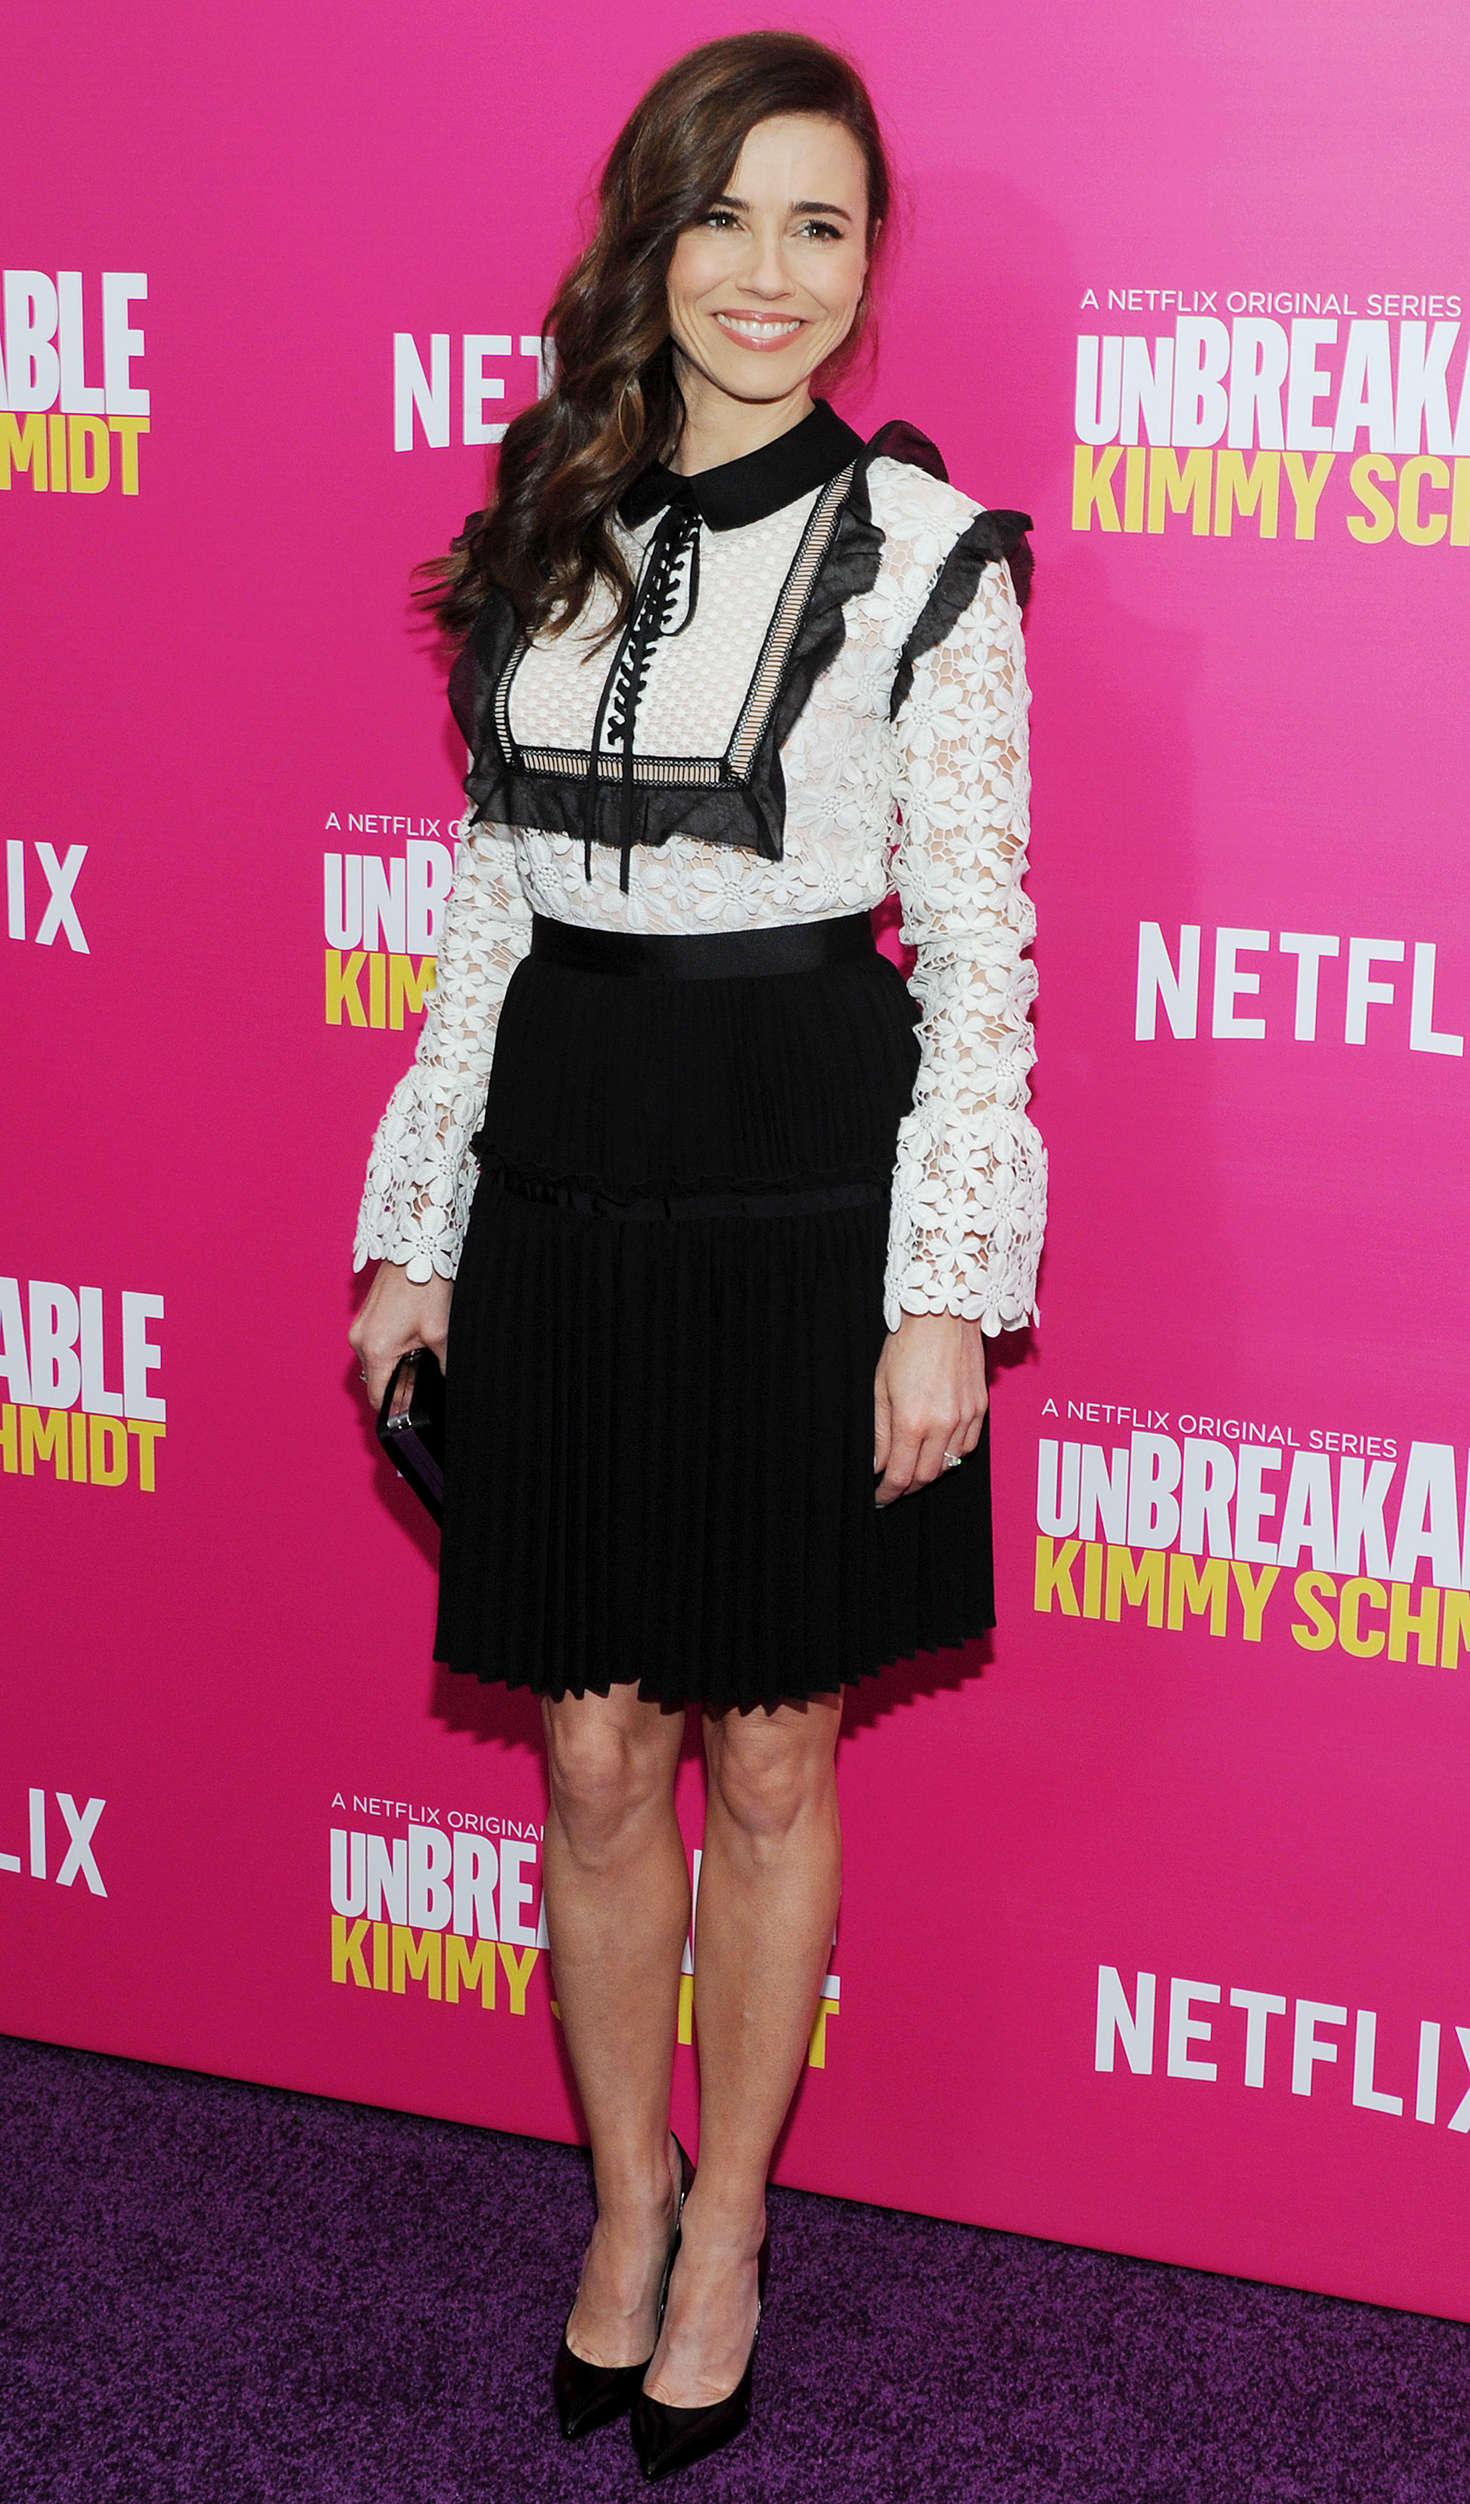 Linda Cardellini Unbreakable Kimmy Schmidt Season Premiere in New York